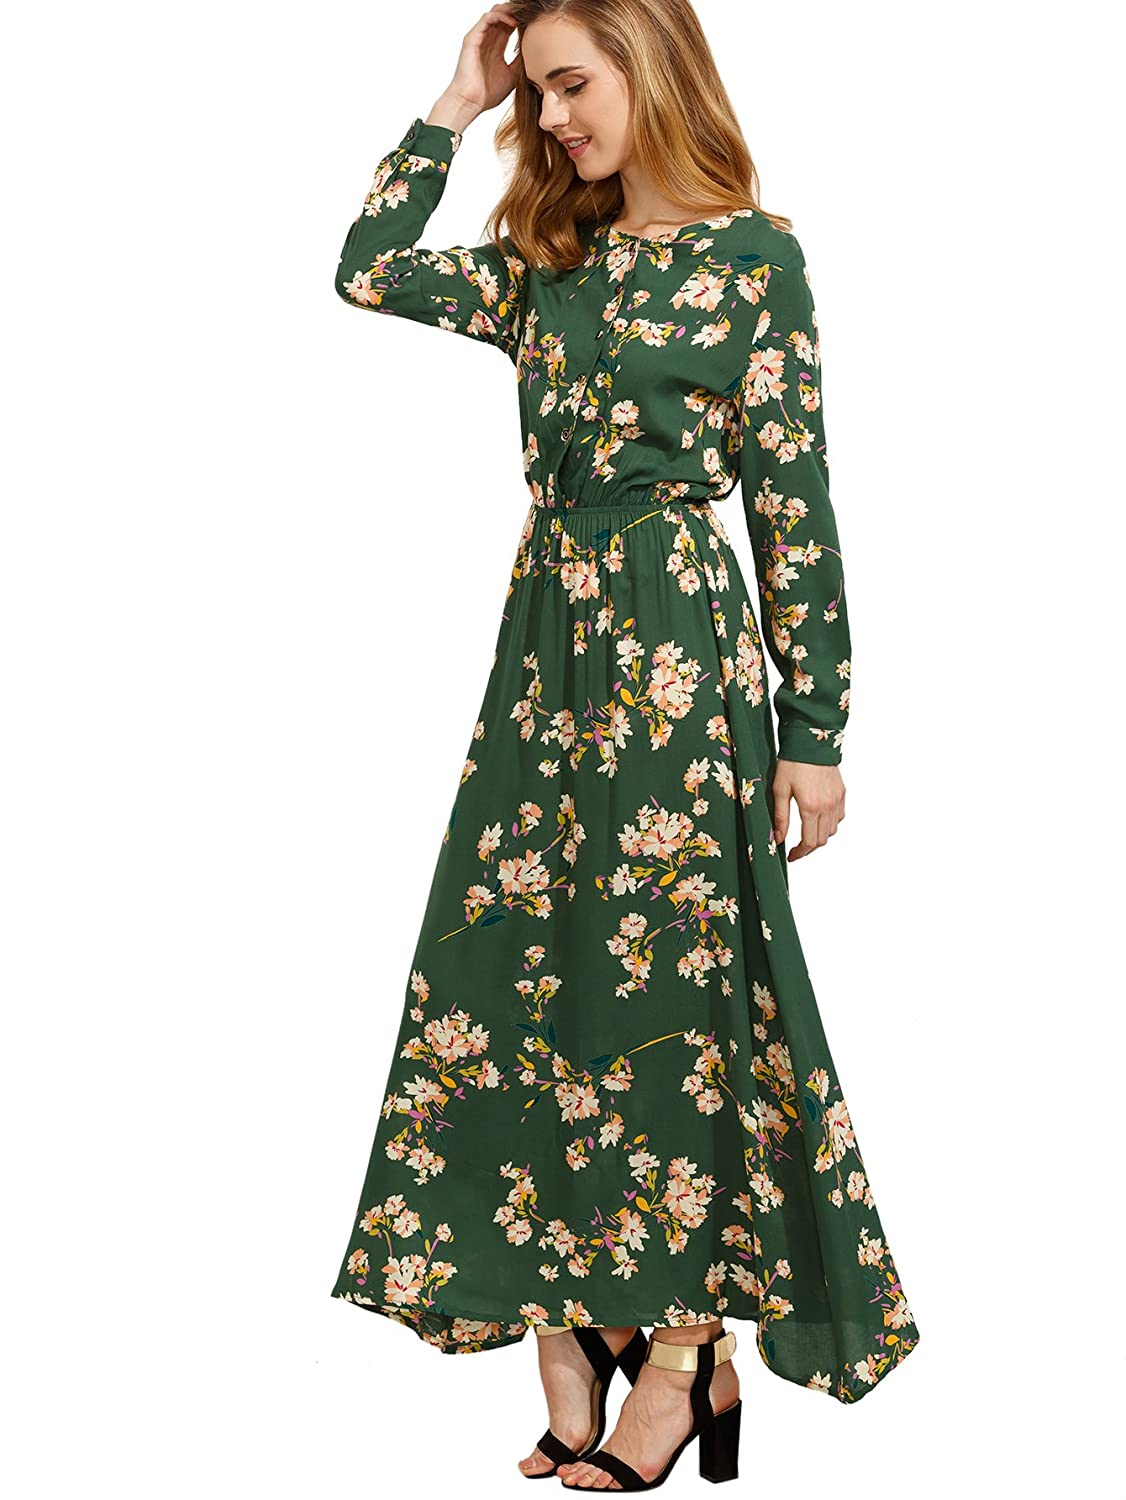 Old Fashioned Dresses | Old Dress Styles Floerns Womens Long Sleeve Floral Print Button Casual Maxi Dress $39.99 AT vintagedancer.com